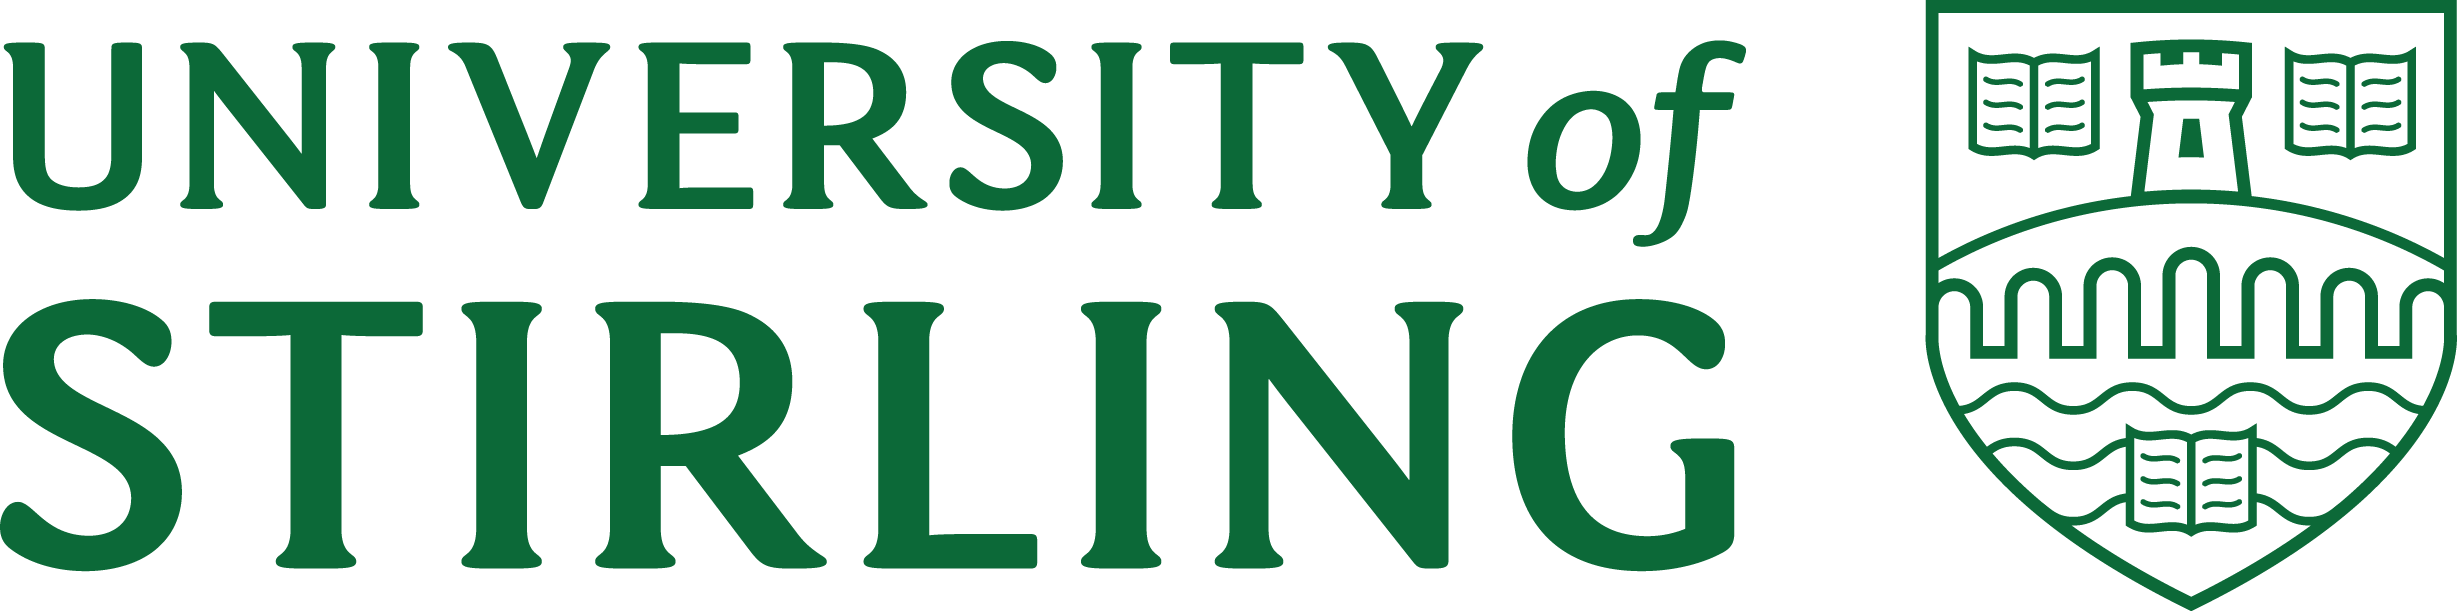 University of Stirling Football Club